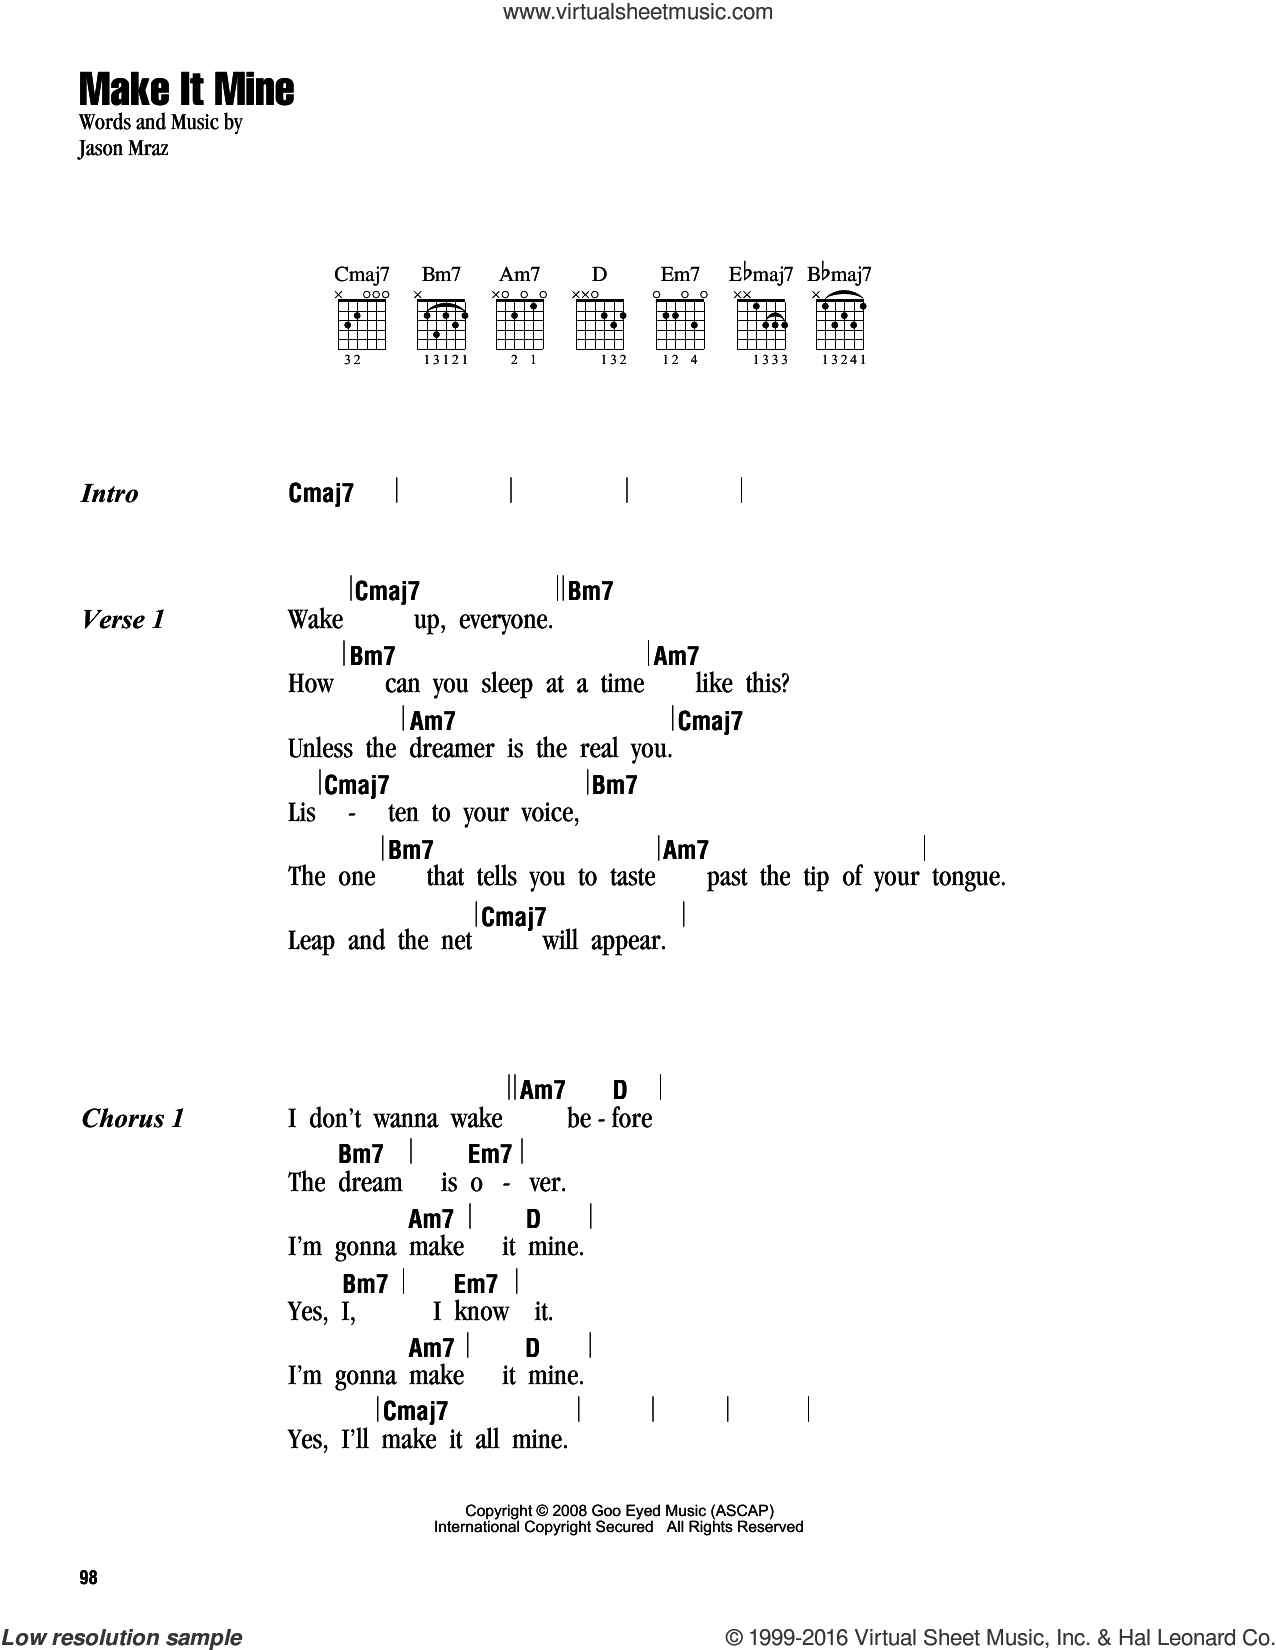 Make It Mine sheet music for guitar (chords) by Jason Mraz, intermediate